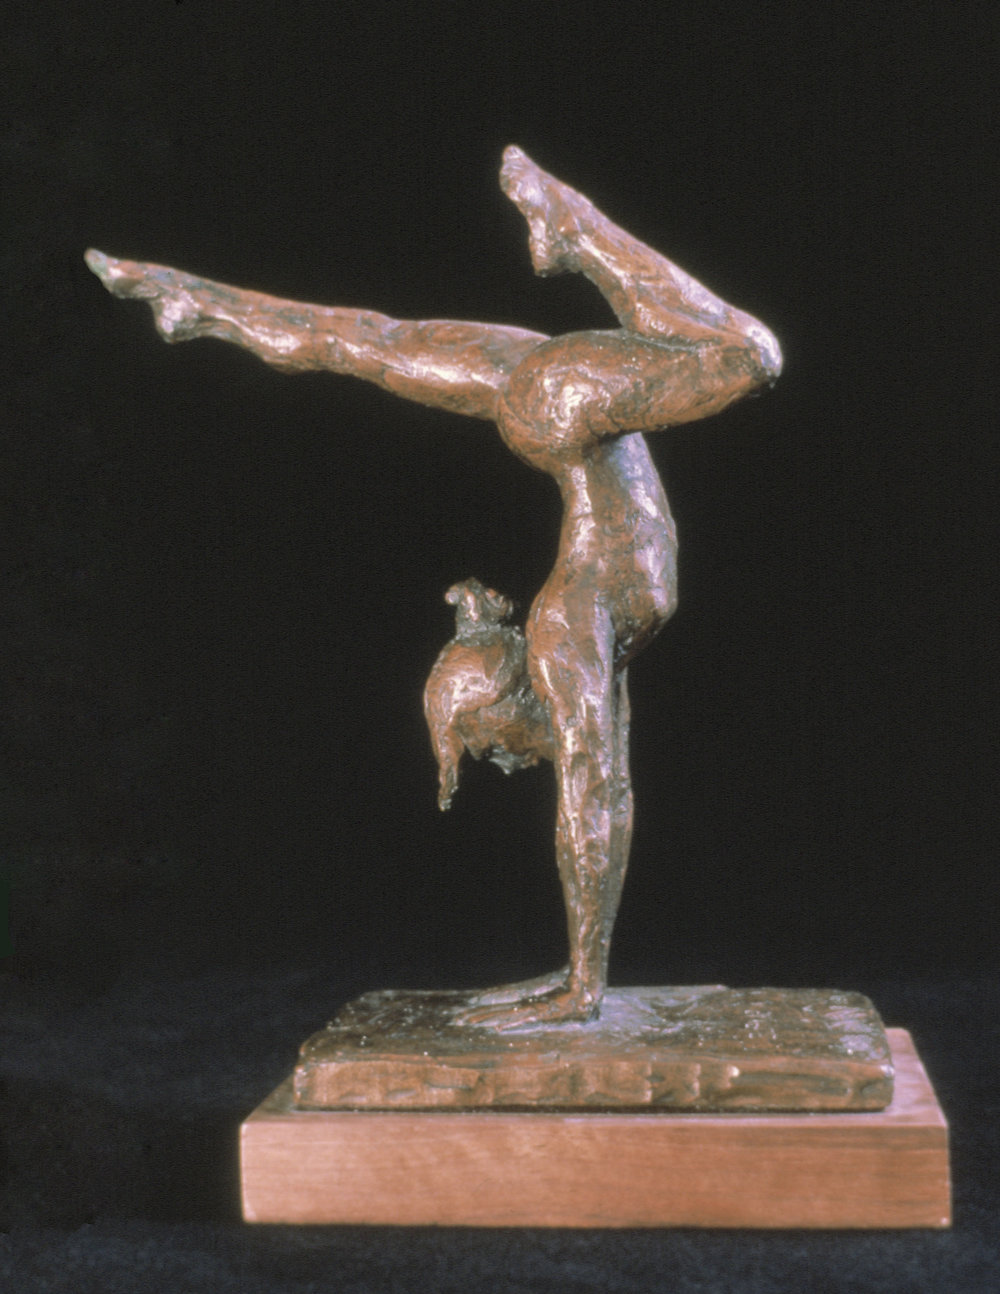 stag-handstand-sports-sculpture-abc-sports-gift-1984-los-angeles-summer-olympics.jpg